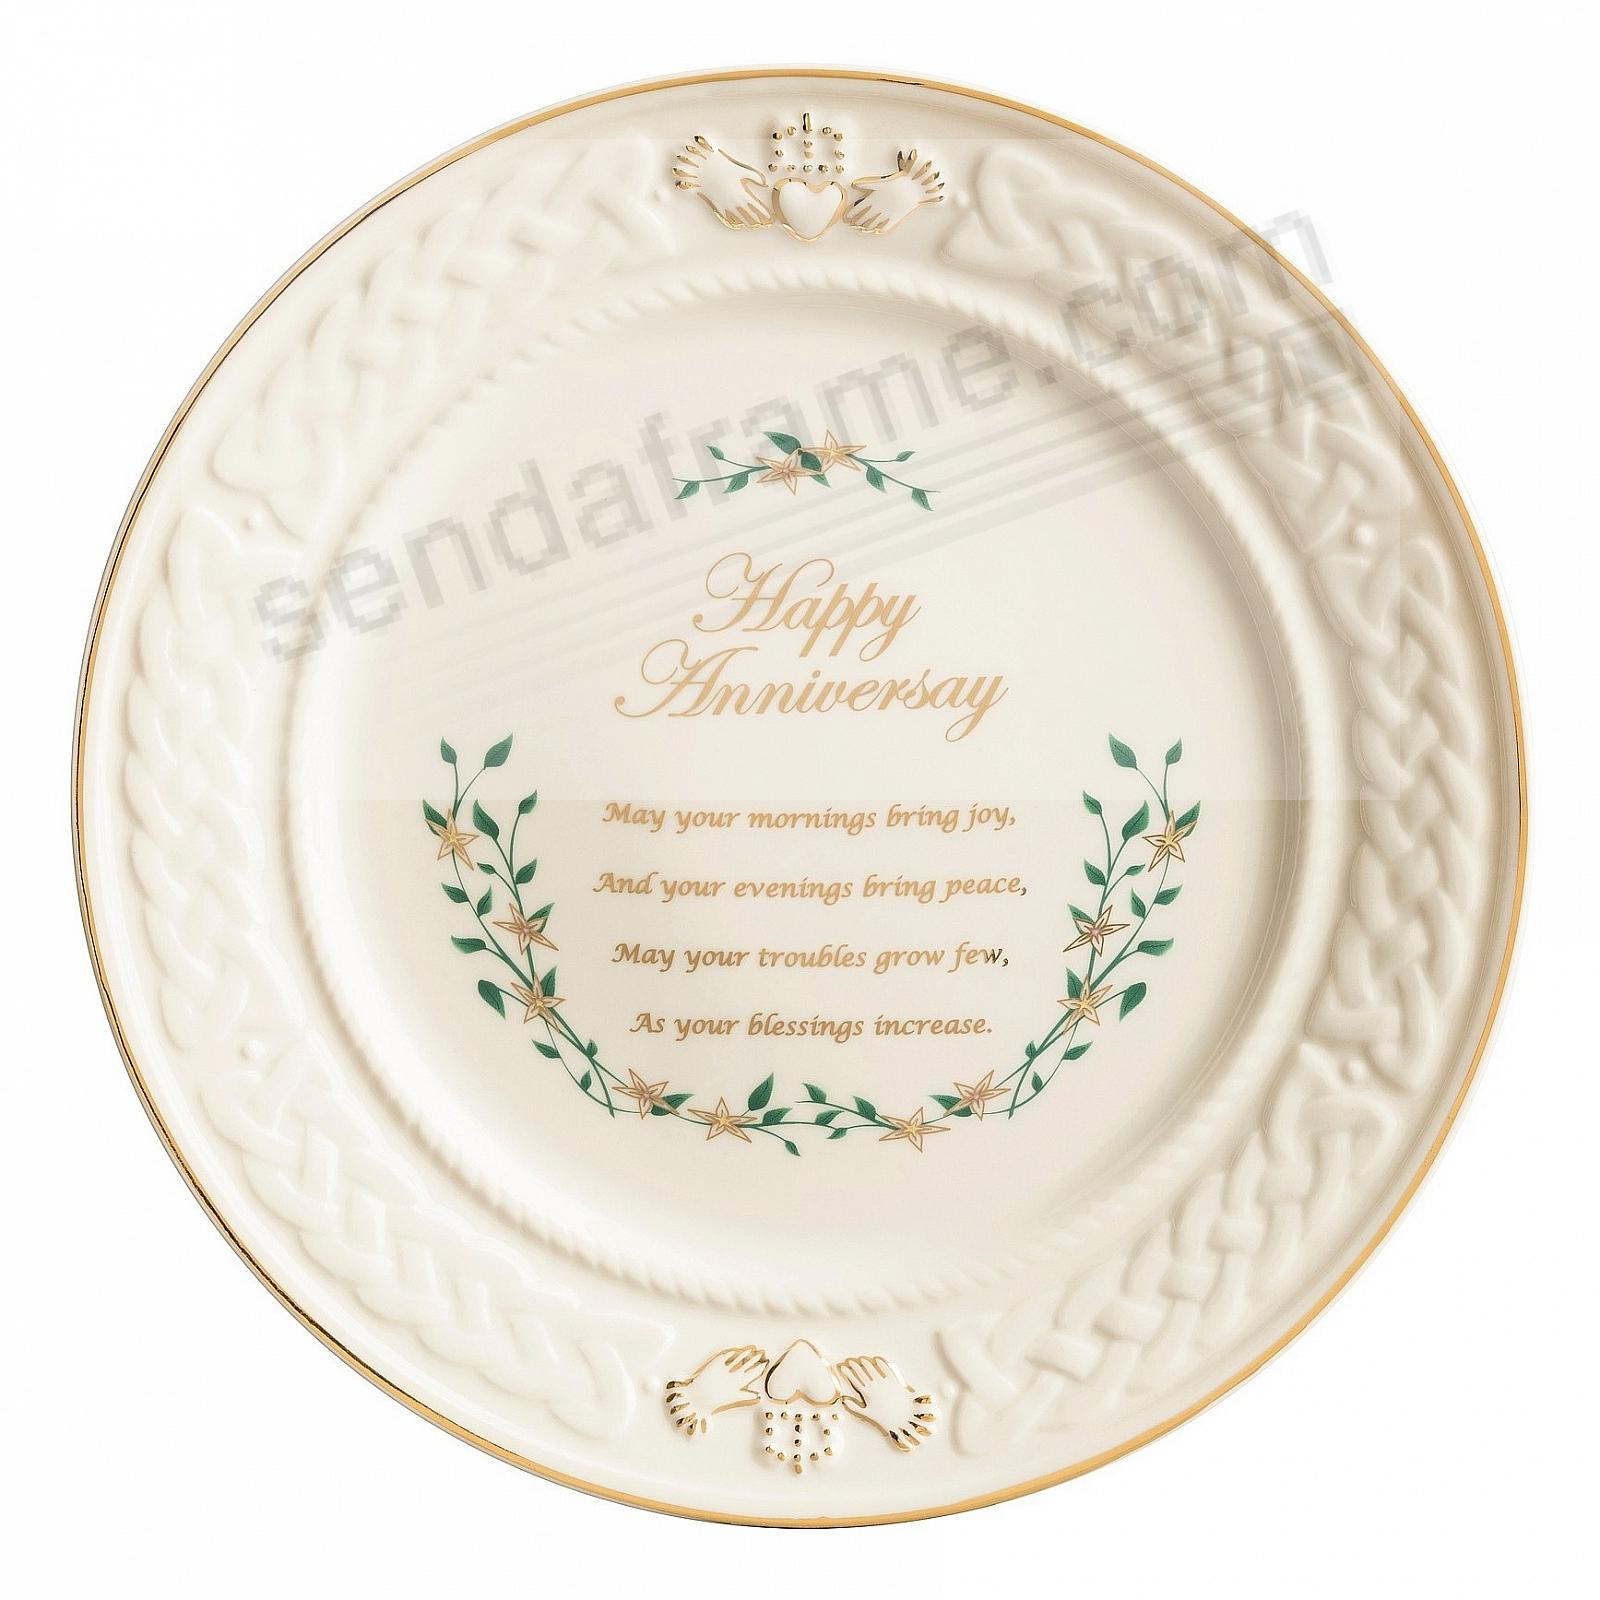 HAPPY ANNIVERSARY PLATE by Belleek®